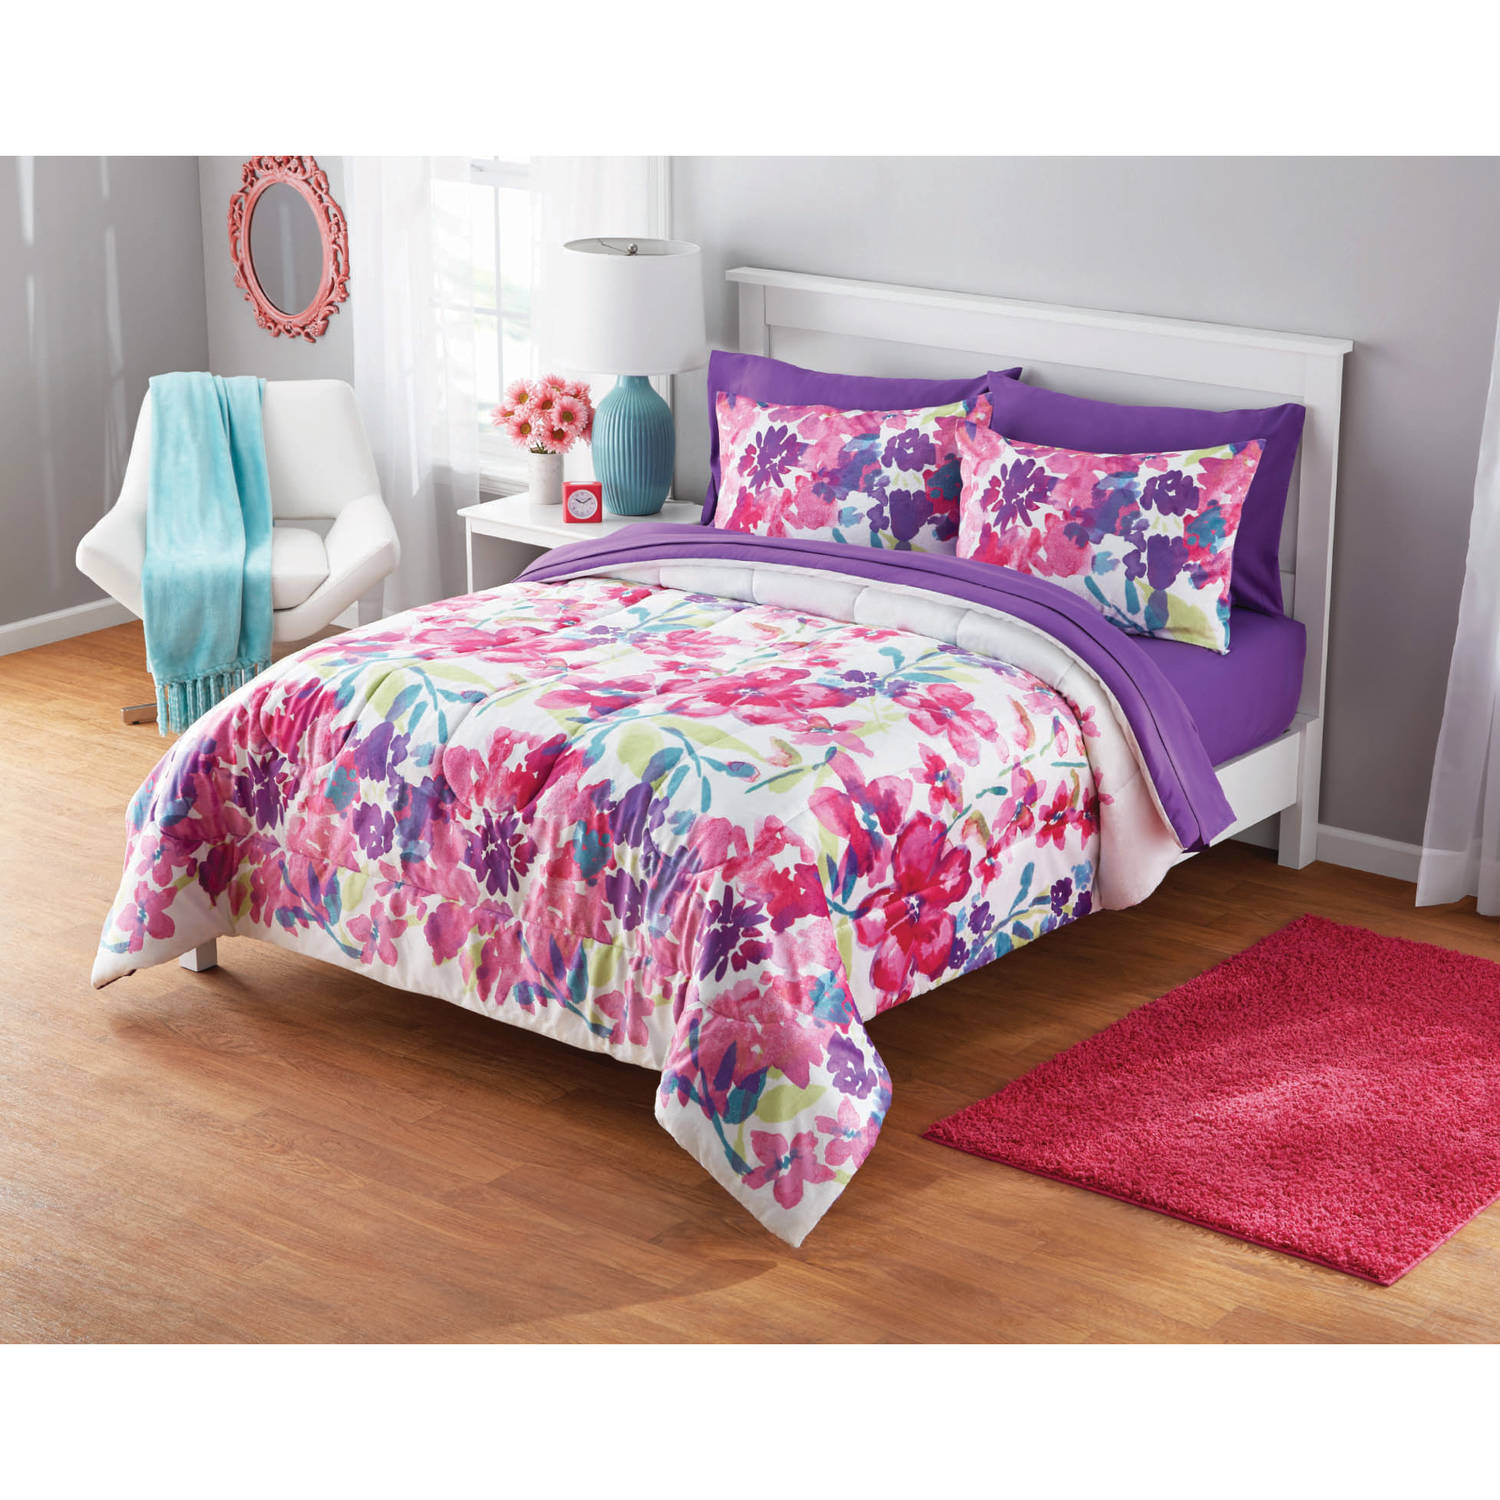 Your Zone Adelaine Watercolor Floral Mink Plush Comforter Set